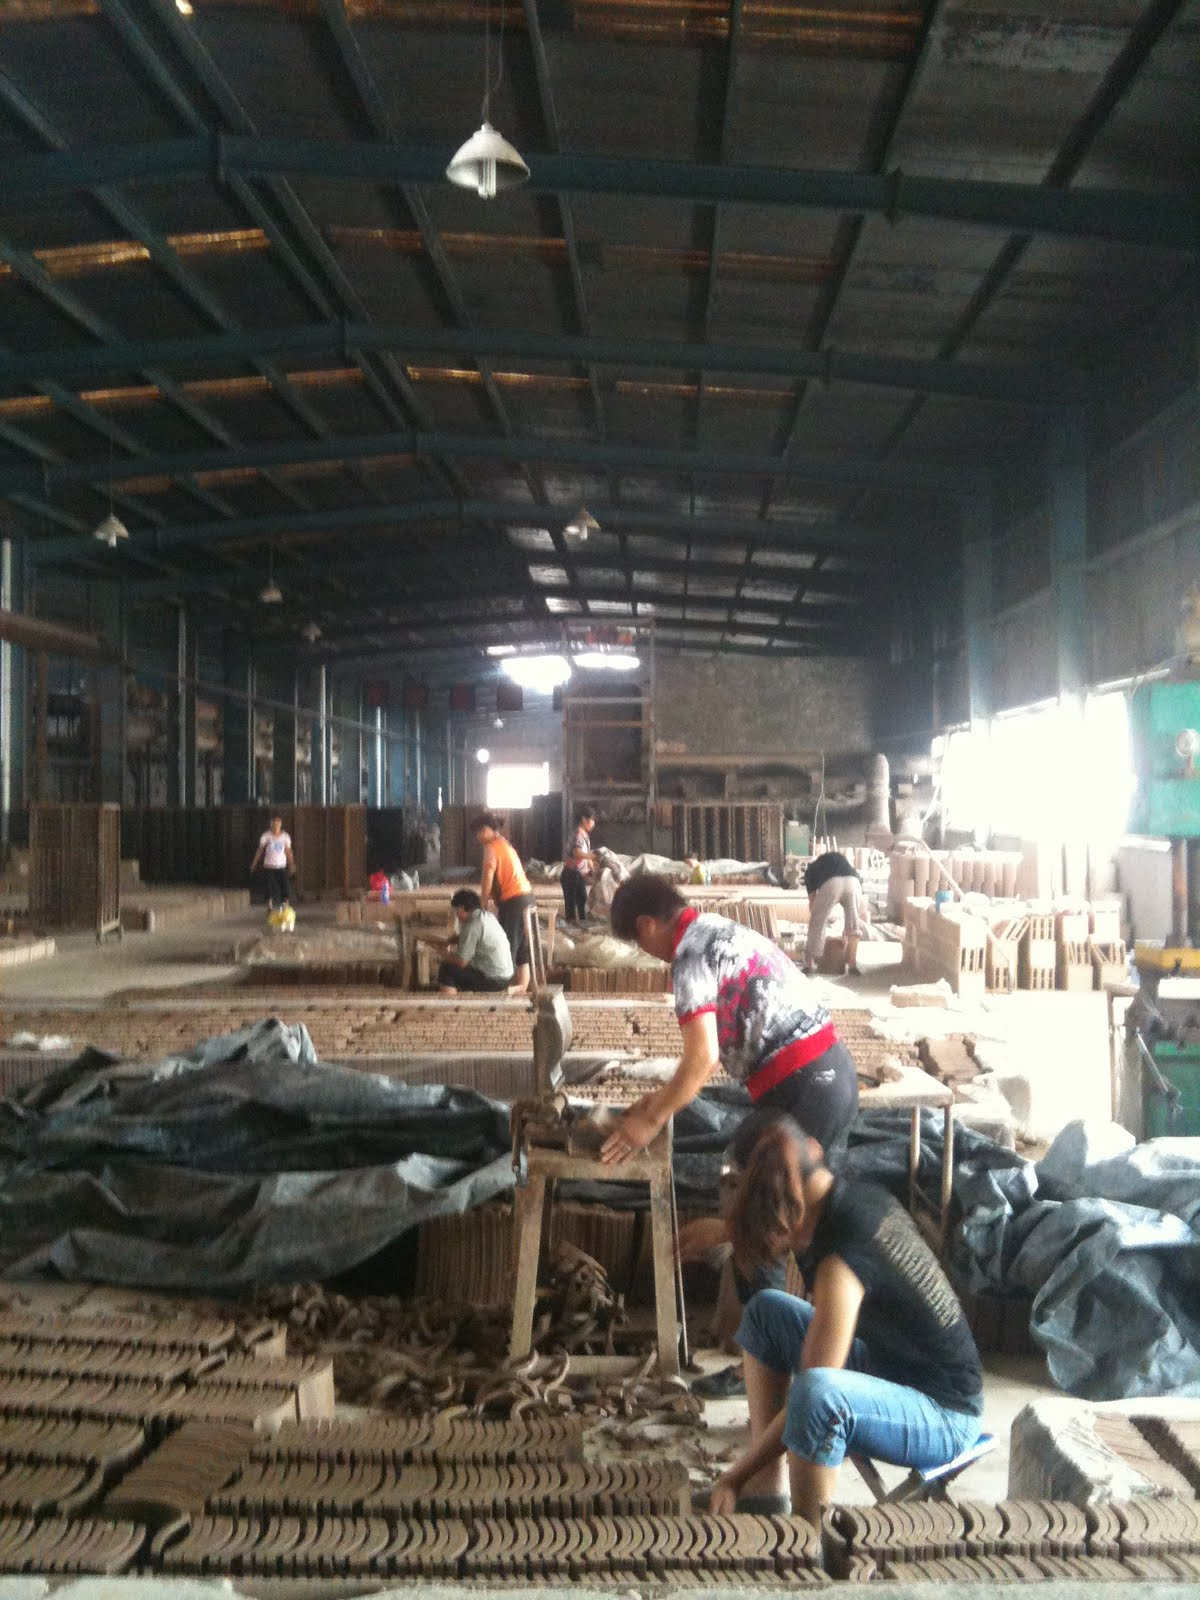 Irish Ceramic Art China: The brick and tile factory in production